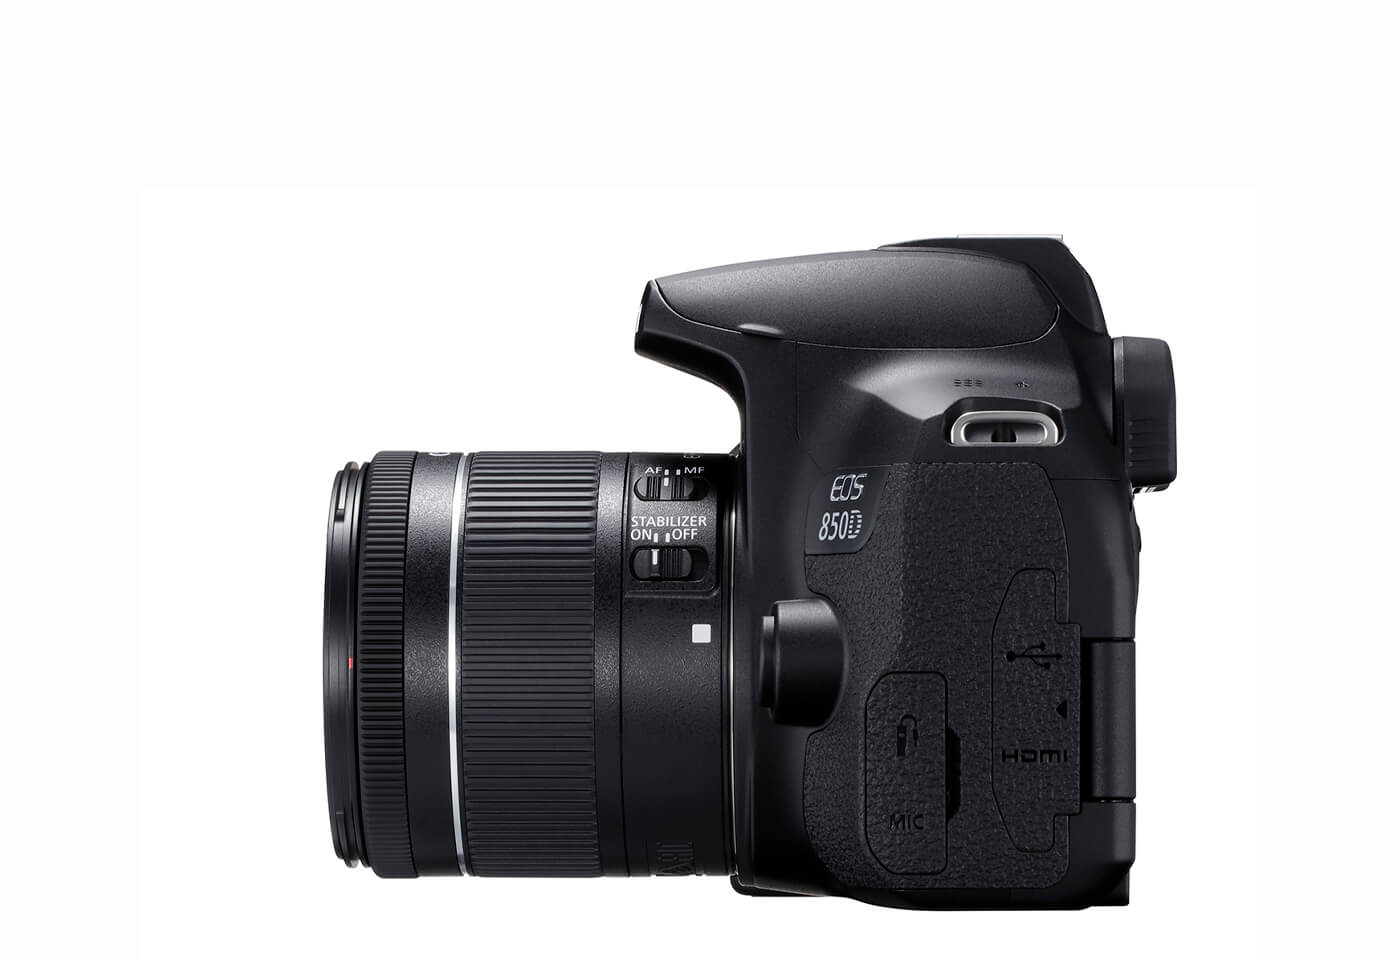 Side profile image of EOS 850D